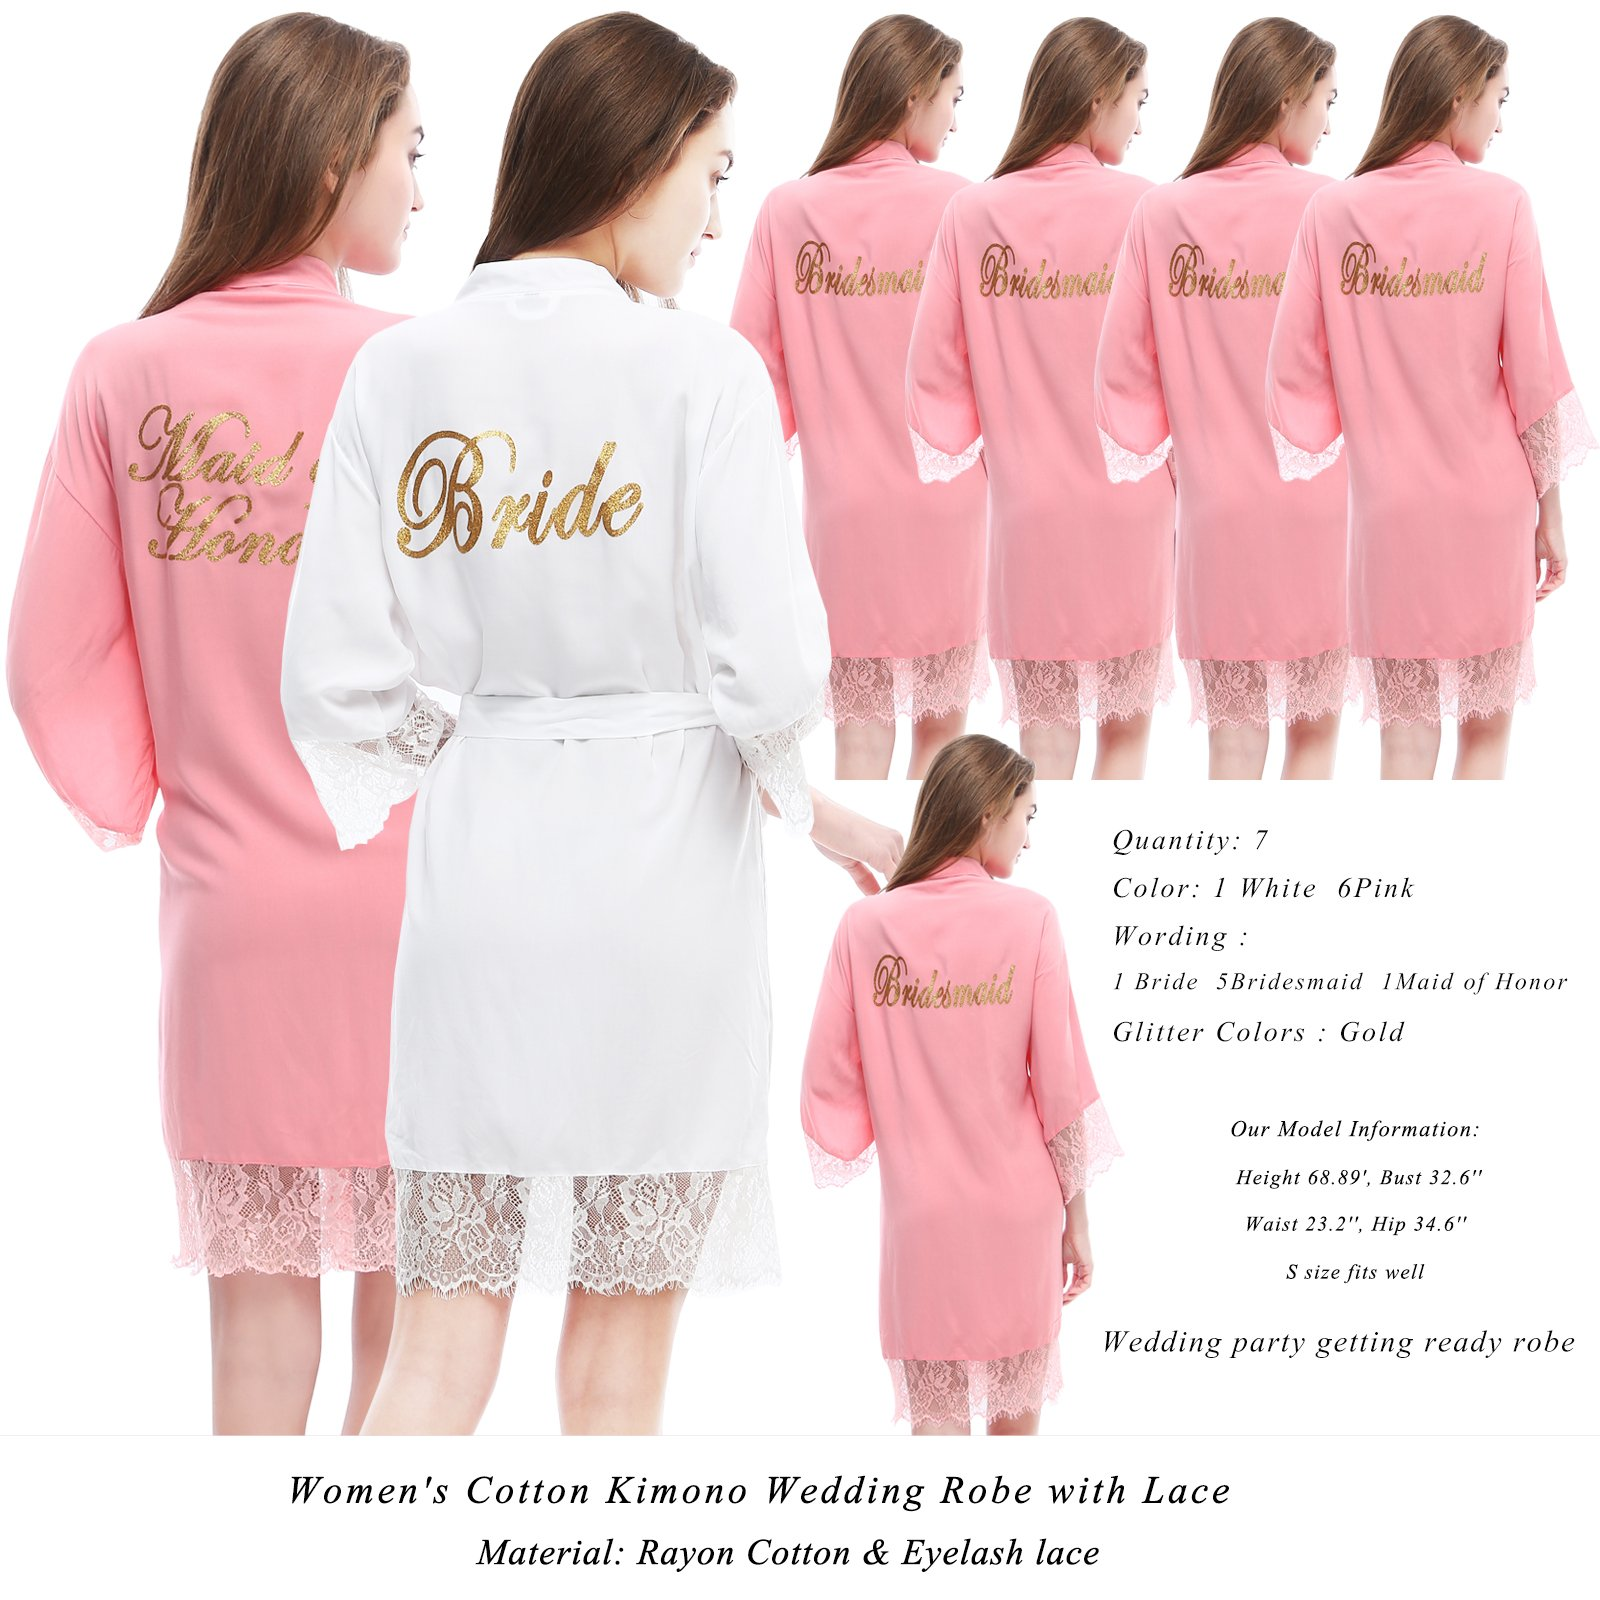 PROGULOVER Bridesmaid Robes Set Of 7 Women's Cotton Kimono Robe For Bridal Maid OG Honor Wedding Party Getting Ready Robe